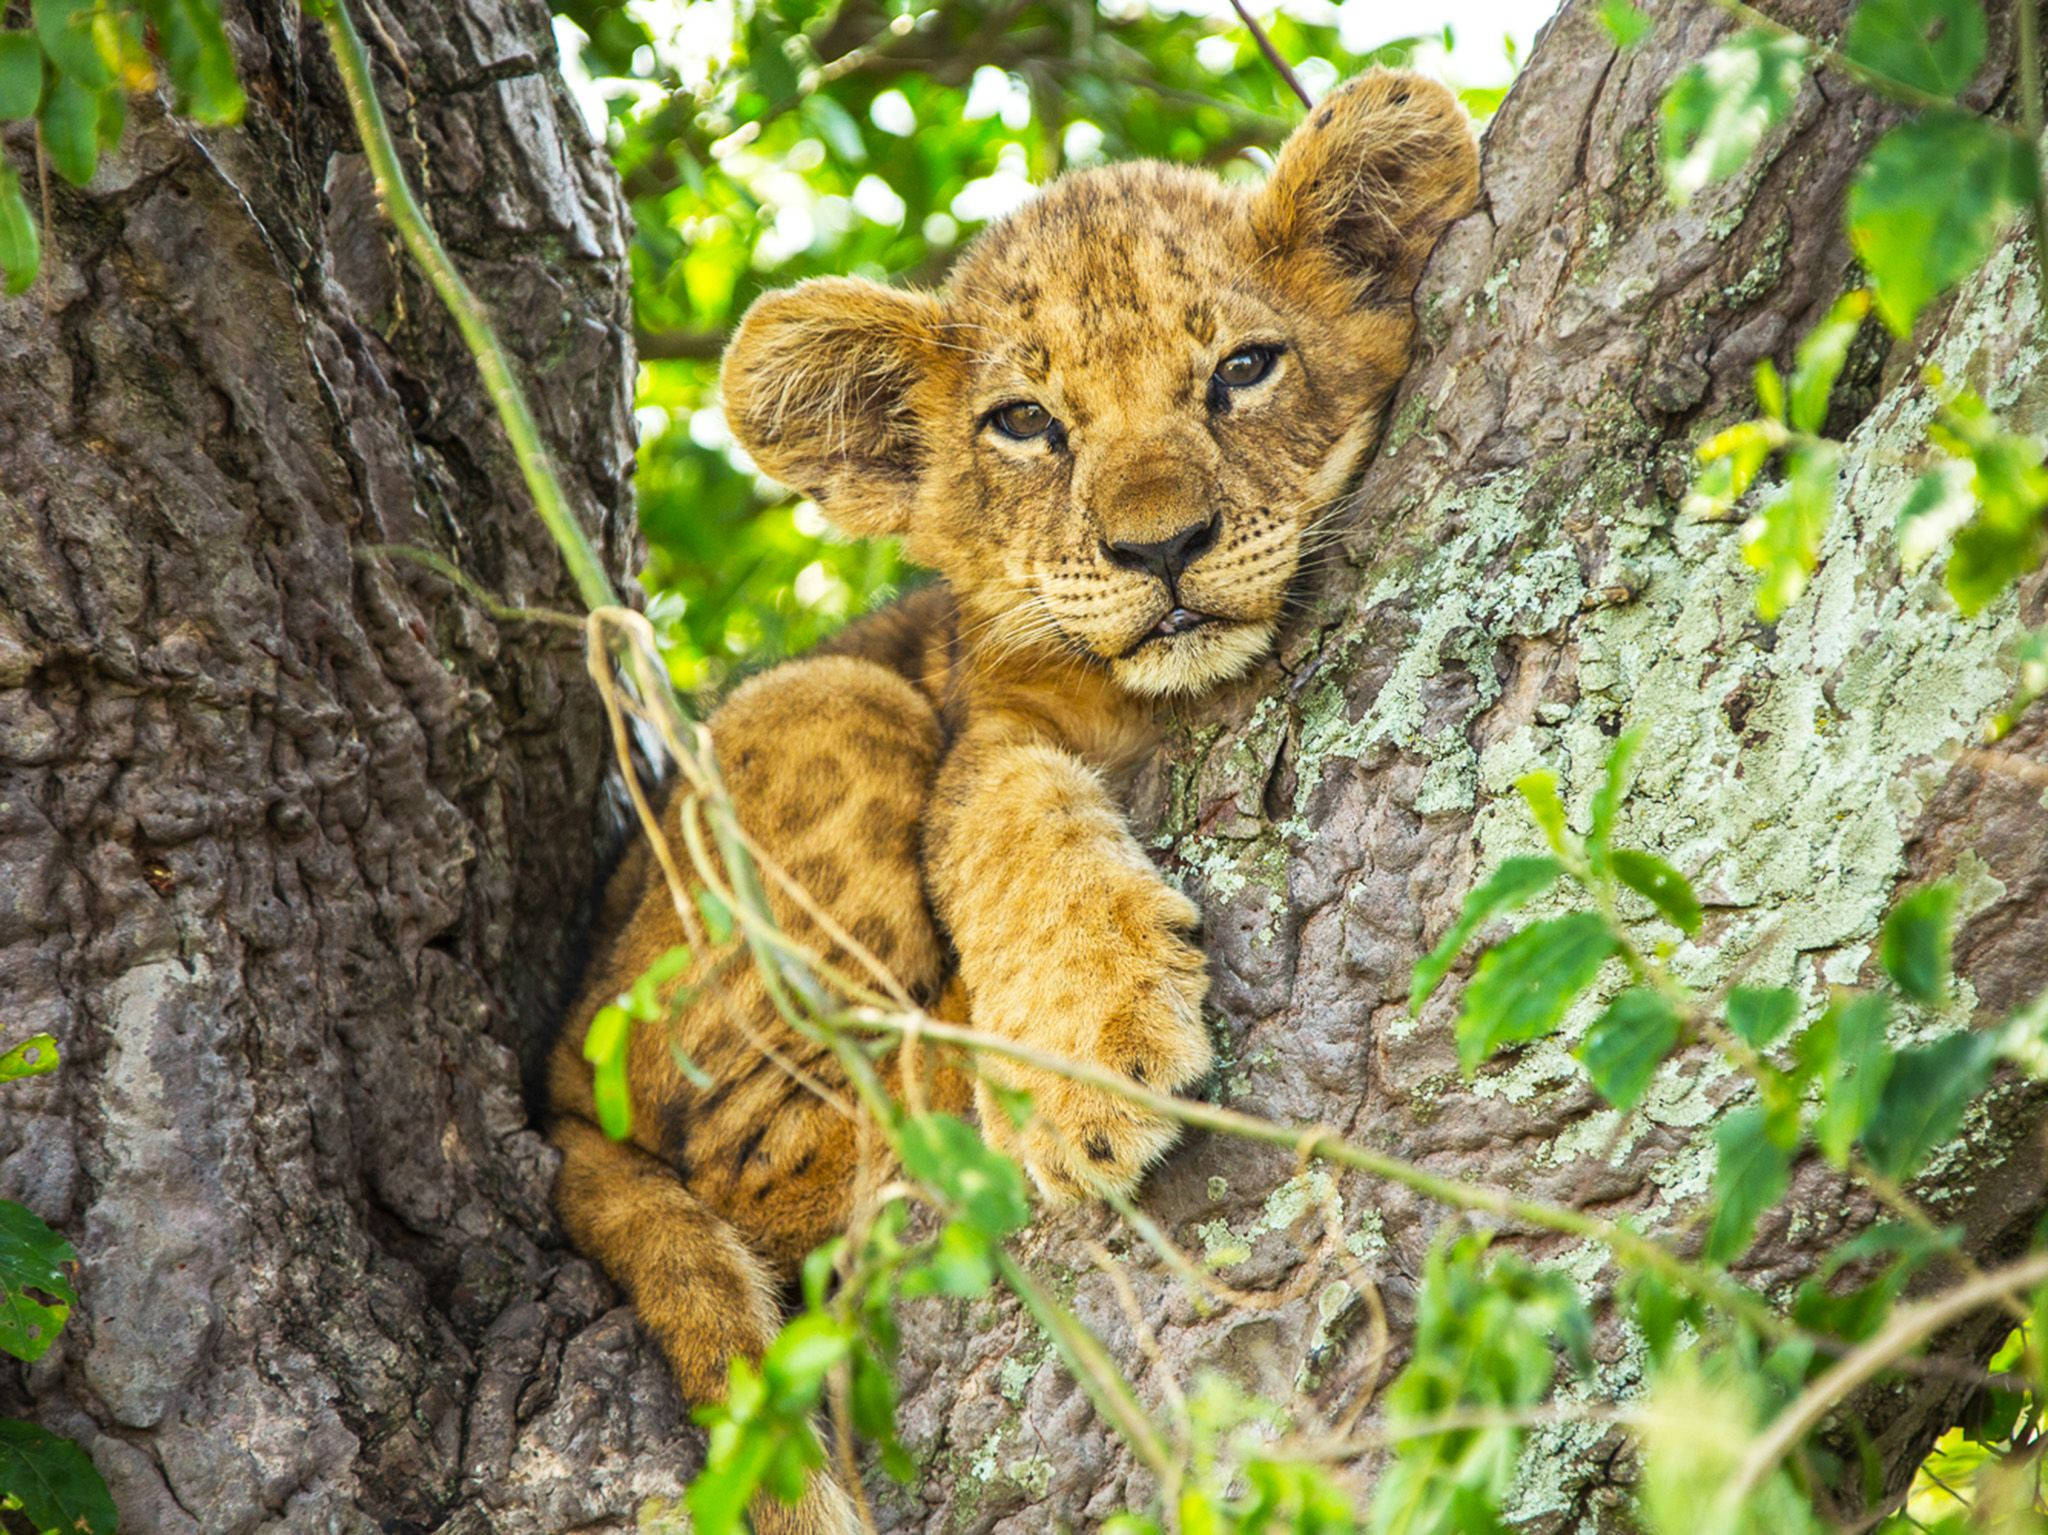 Queen Elizabeth National Park, Uganda:  A young lion cub nestled in fork of tree. This image is... [Foto del giorno - novembre 2018]